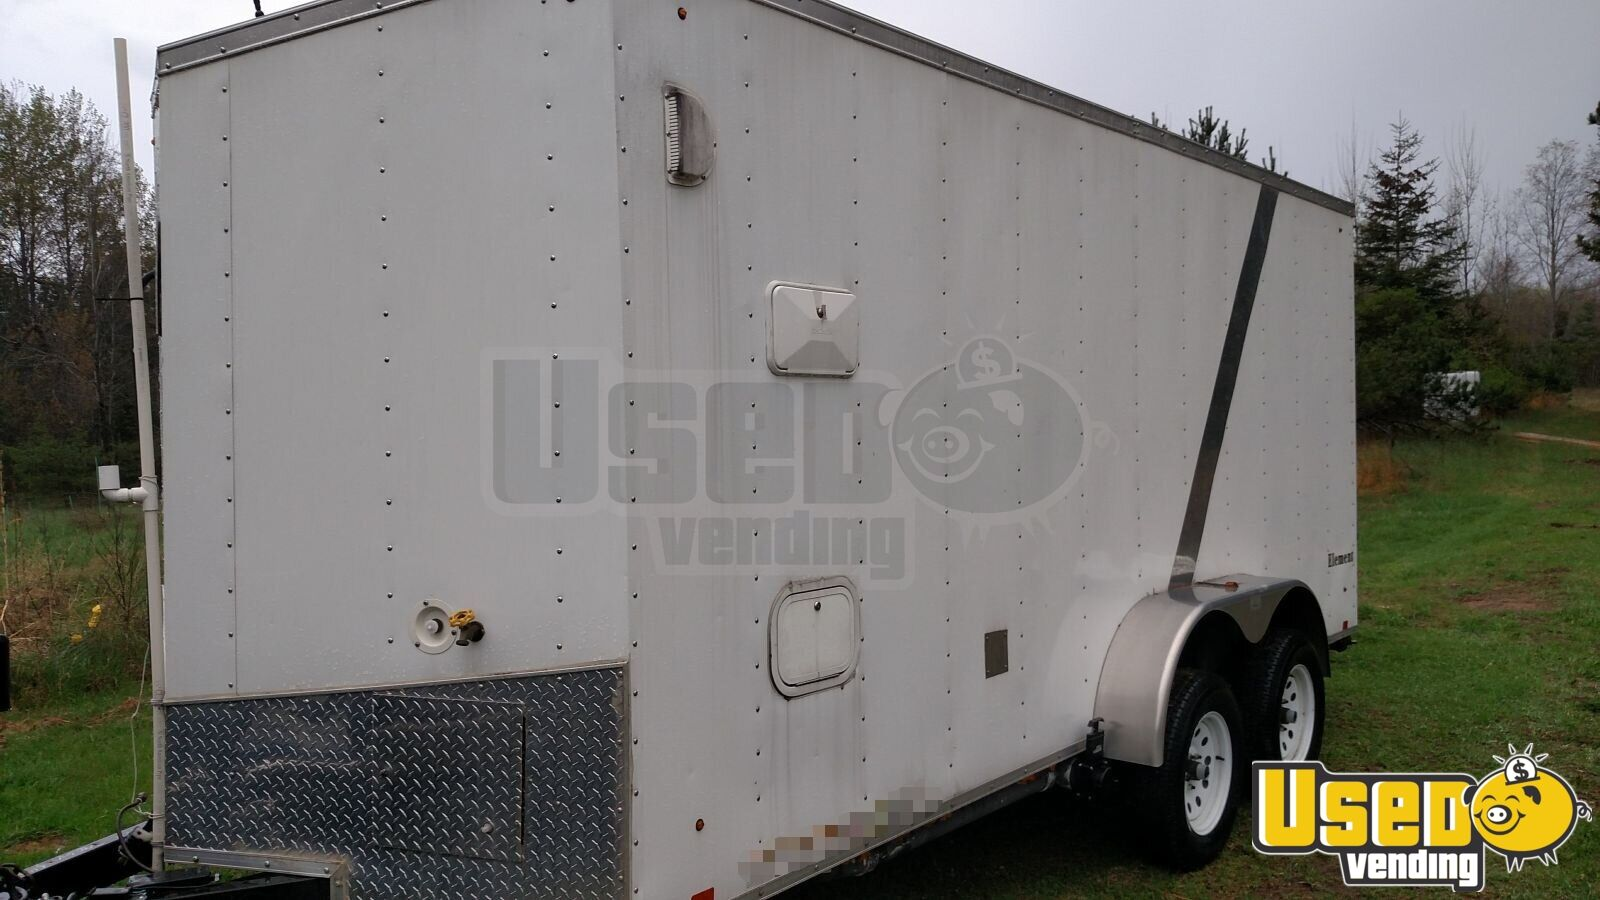 2012 Lgs Industries Concession Trailer Concession Window Michigan for Sale - 2